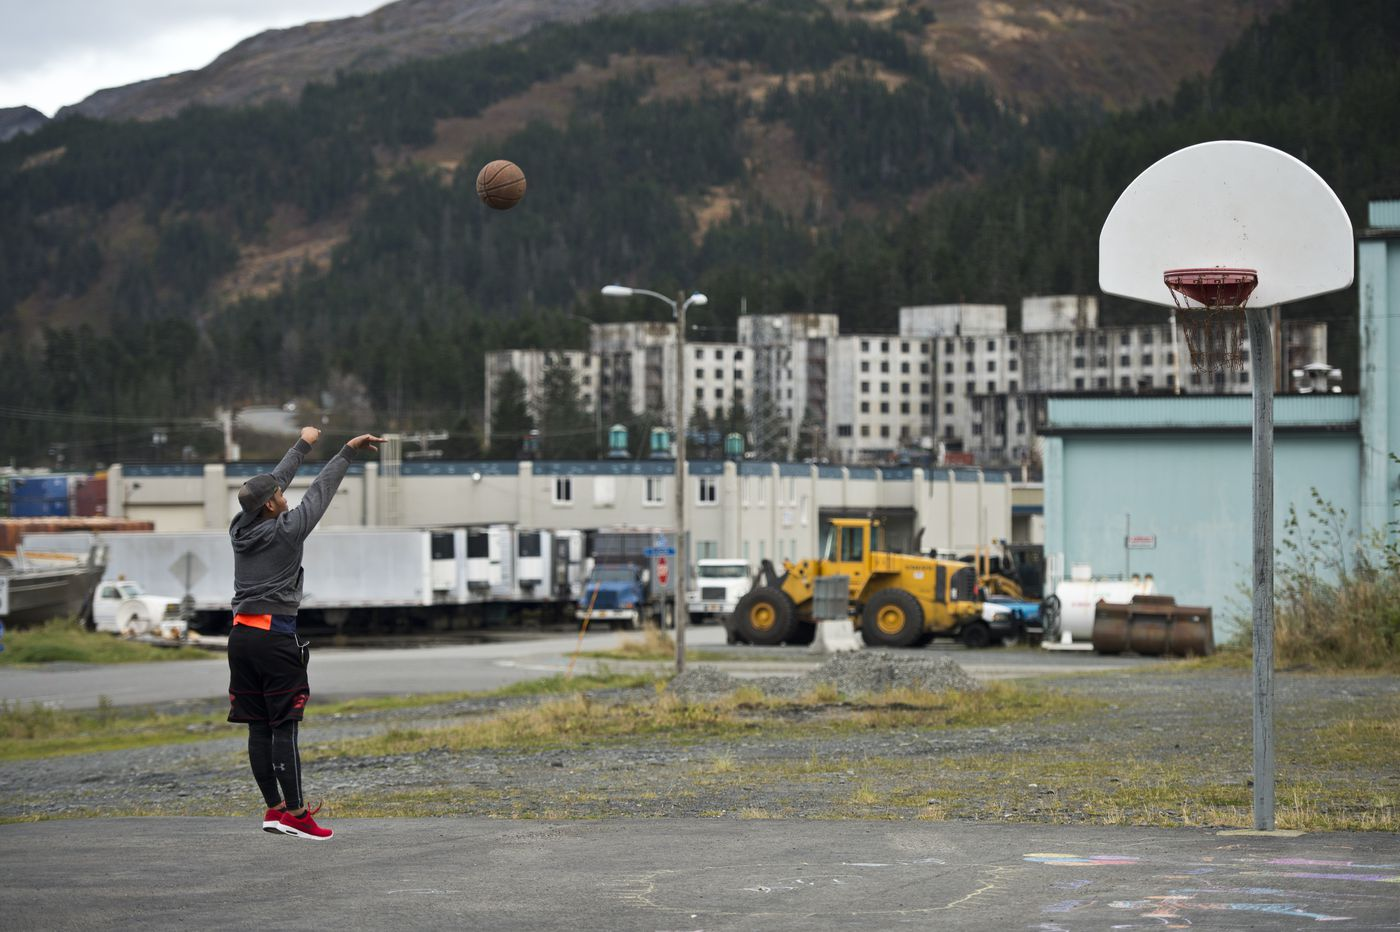 Michaelo Medez, 16, shoots hoops in Whittier on Oct. 10. (Marc Lester / Alaska Dispatch News)